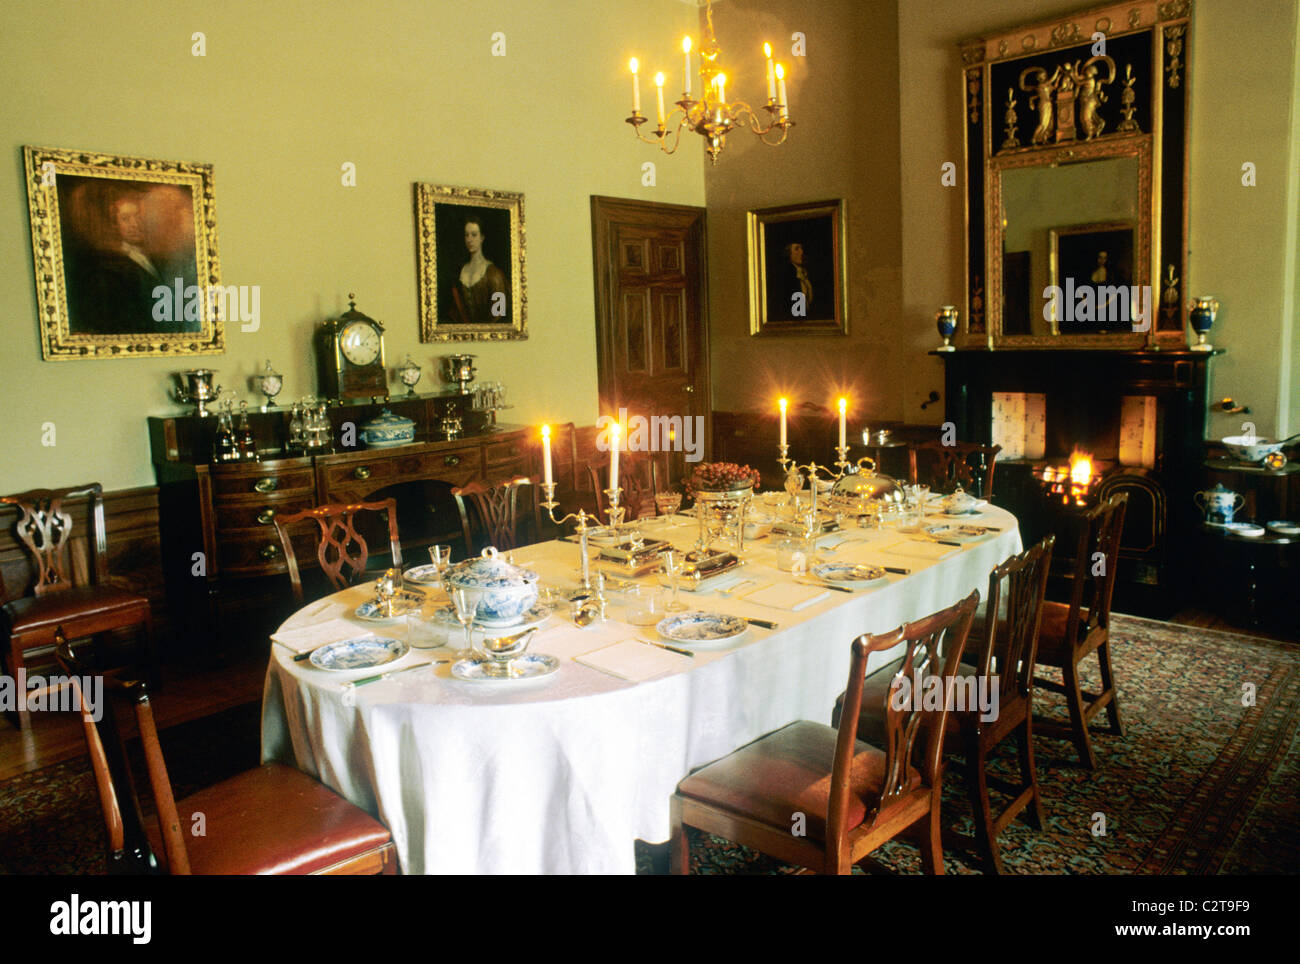 Edinburgh, The Georgian House, Dining Room Interior Scotland UK Scottish  Museum Museums, No. 7, Charlotte Square, New Town 18th